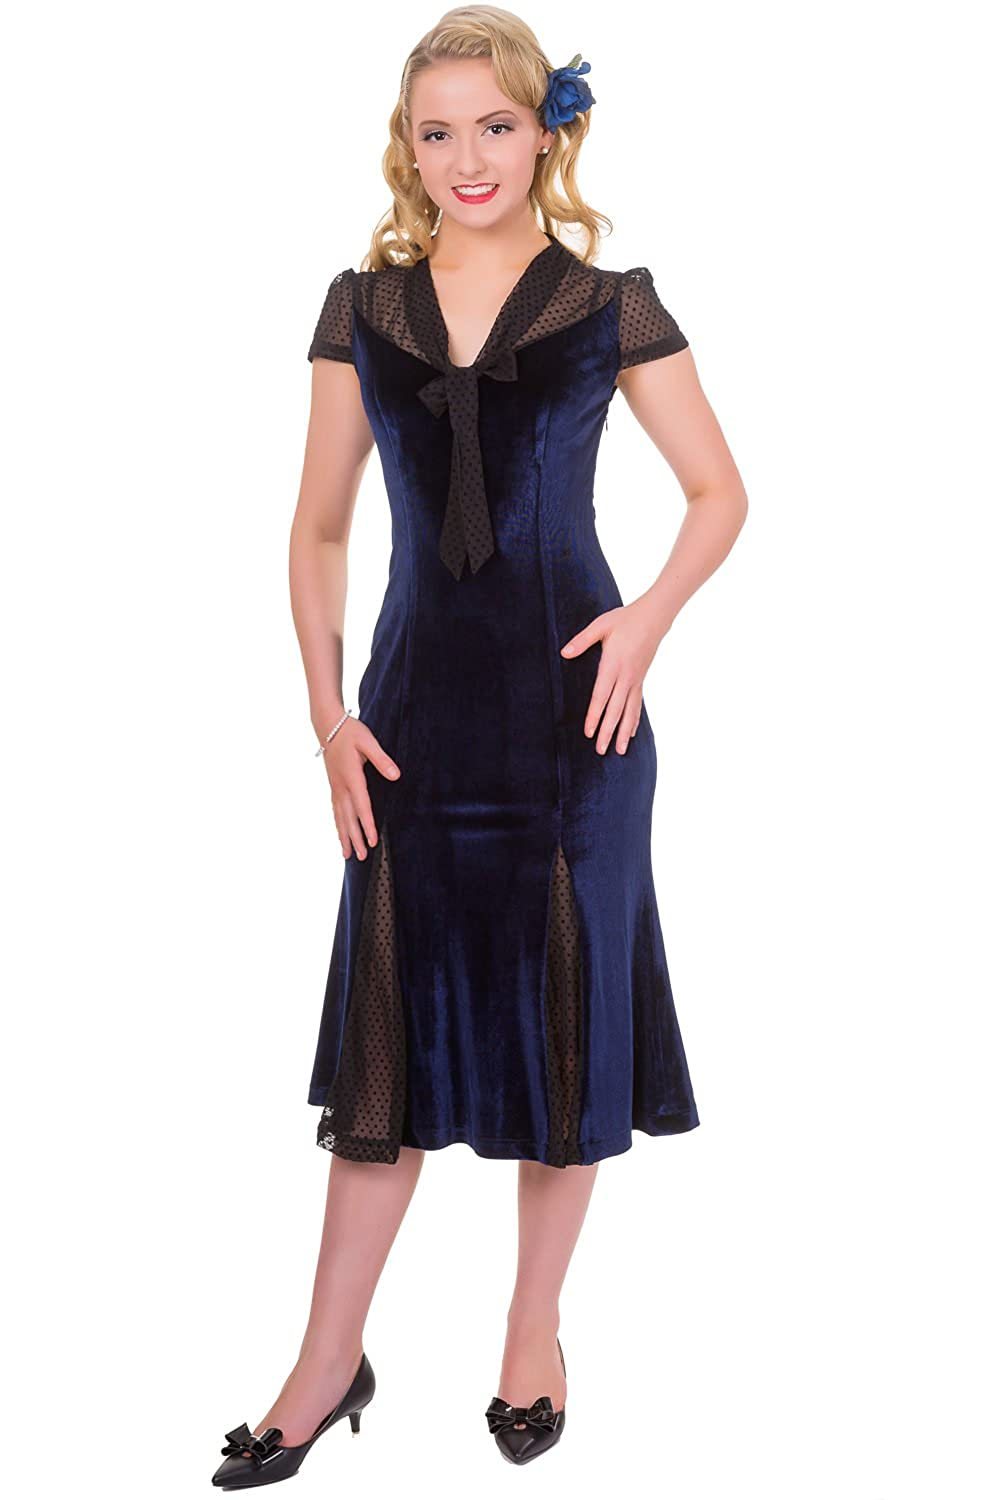 Where to Buy 1920s Dresses- Vintage, Repro, Inspired Styles Online